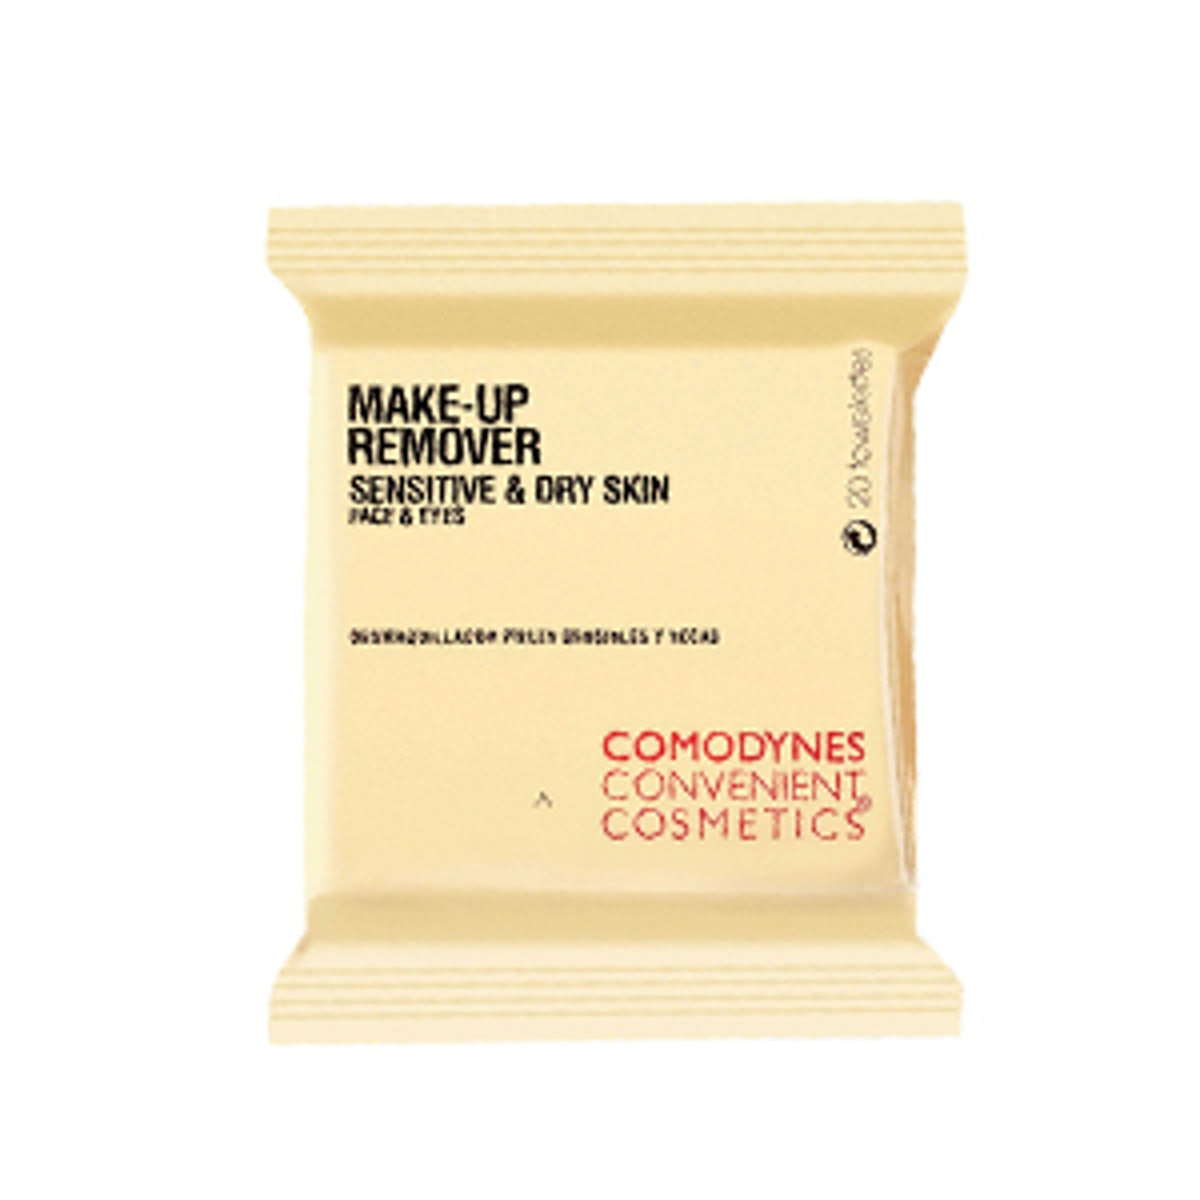 Make-Up Remover Towelettes